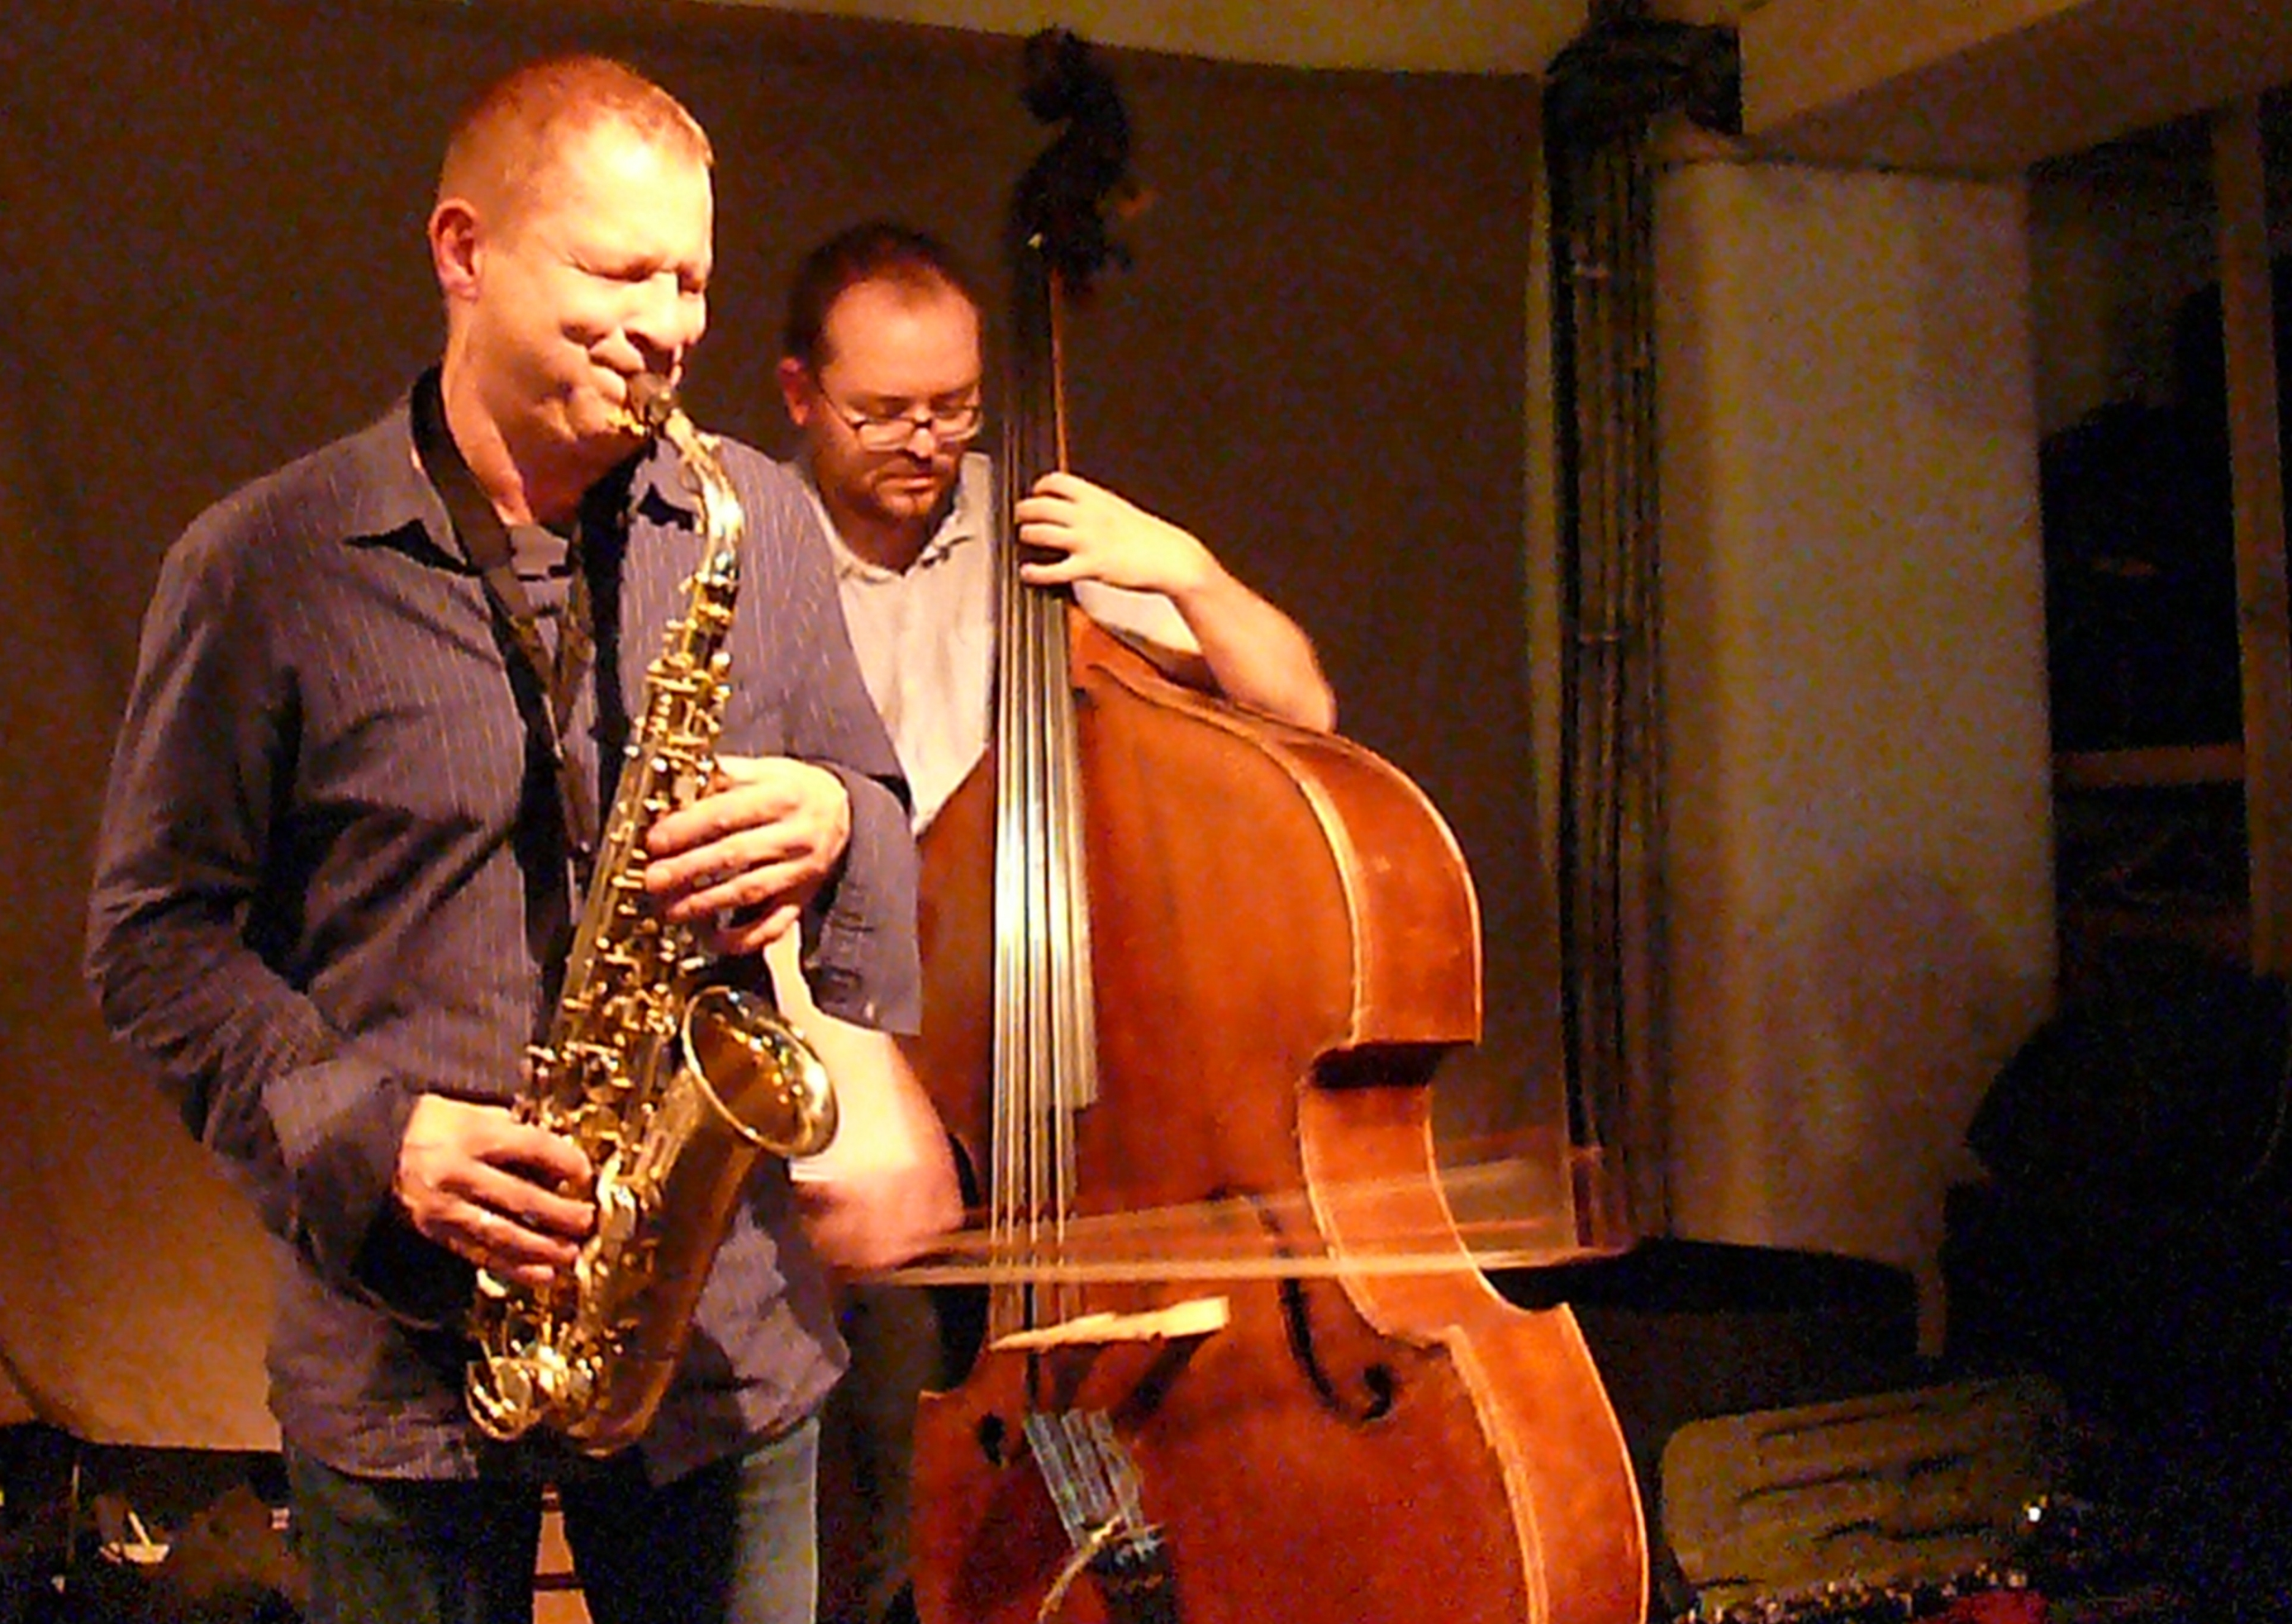 Mikolaj Trzaska and Olie Brice at Cafe Oto, London in October 2012